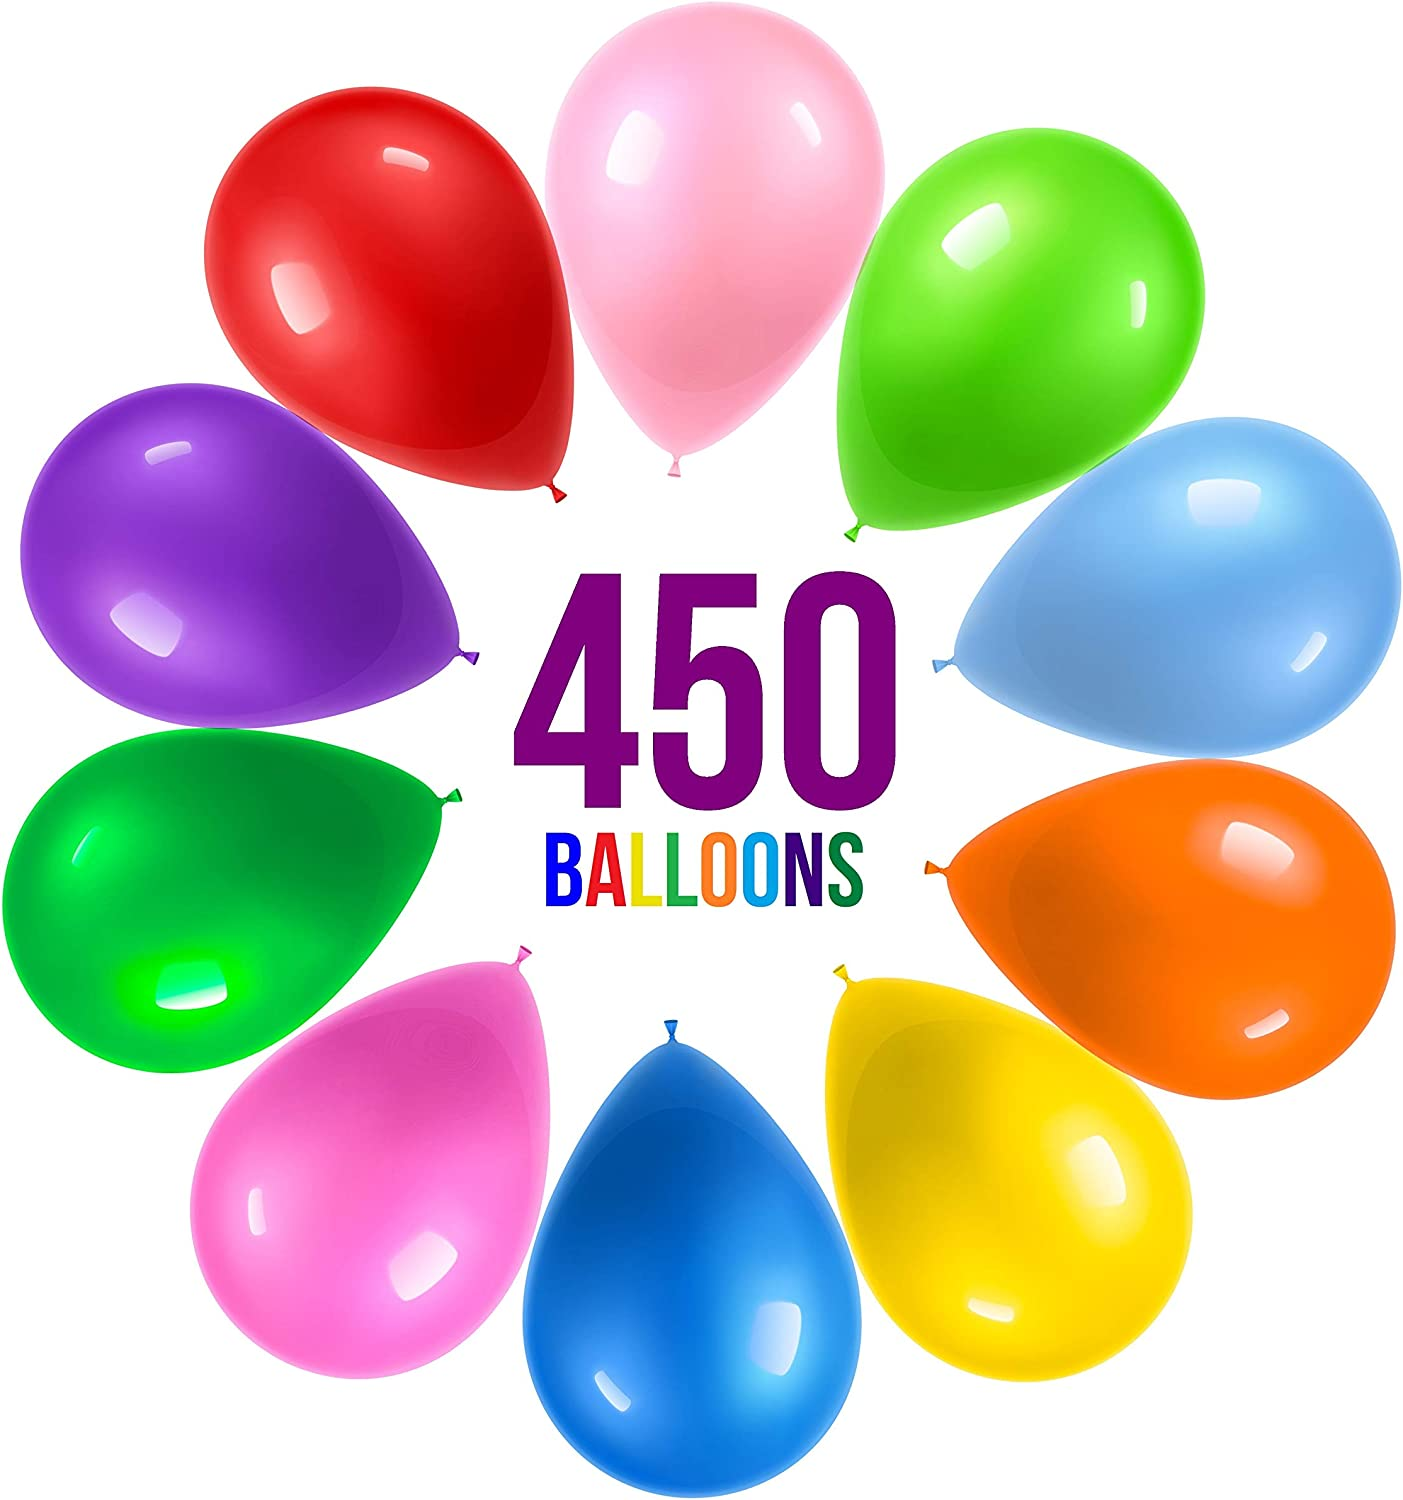 Amazon.com: Prextex 450 Party Balloons 12 Inch 10 Assorted Rainbow Colors -  Bulk Pack of Strong Latex Balloons for Party Decorations, Birthday Parties  Supplies or Arch Decor - Helium Quality: Toys & Games